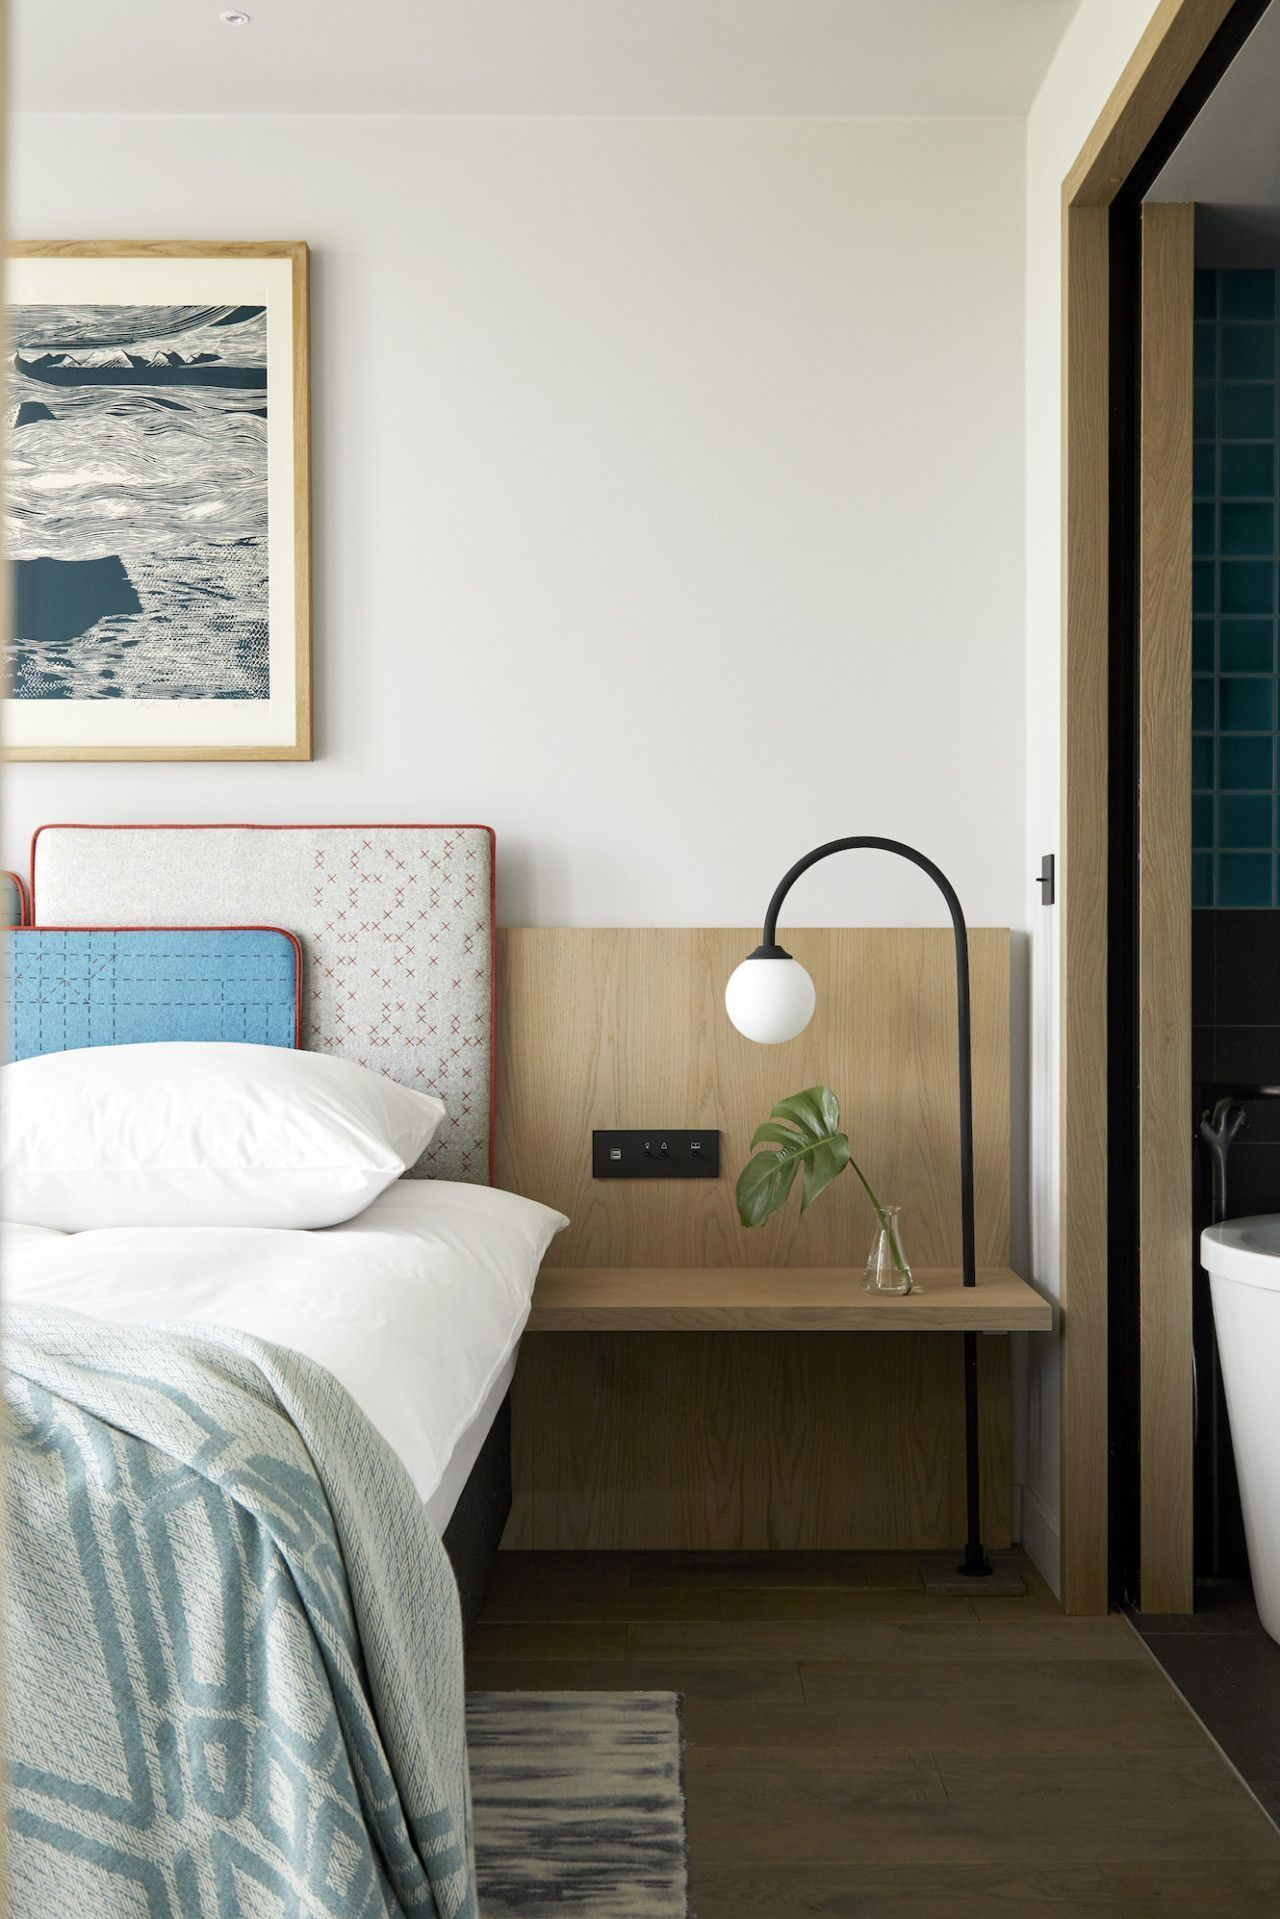 Boutique Hotel Bedrooms: The PURO Kraków Kazimierz Boutique Hotel Design In Kraków